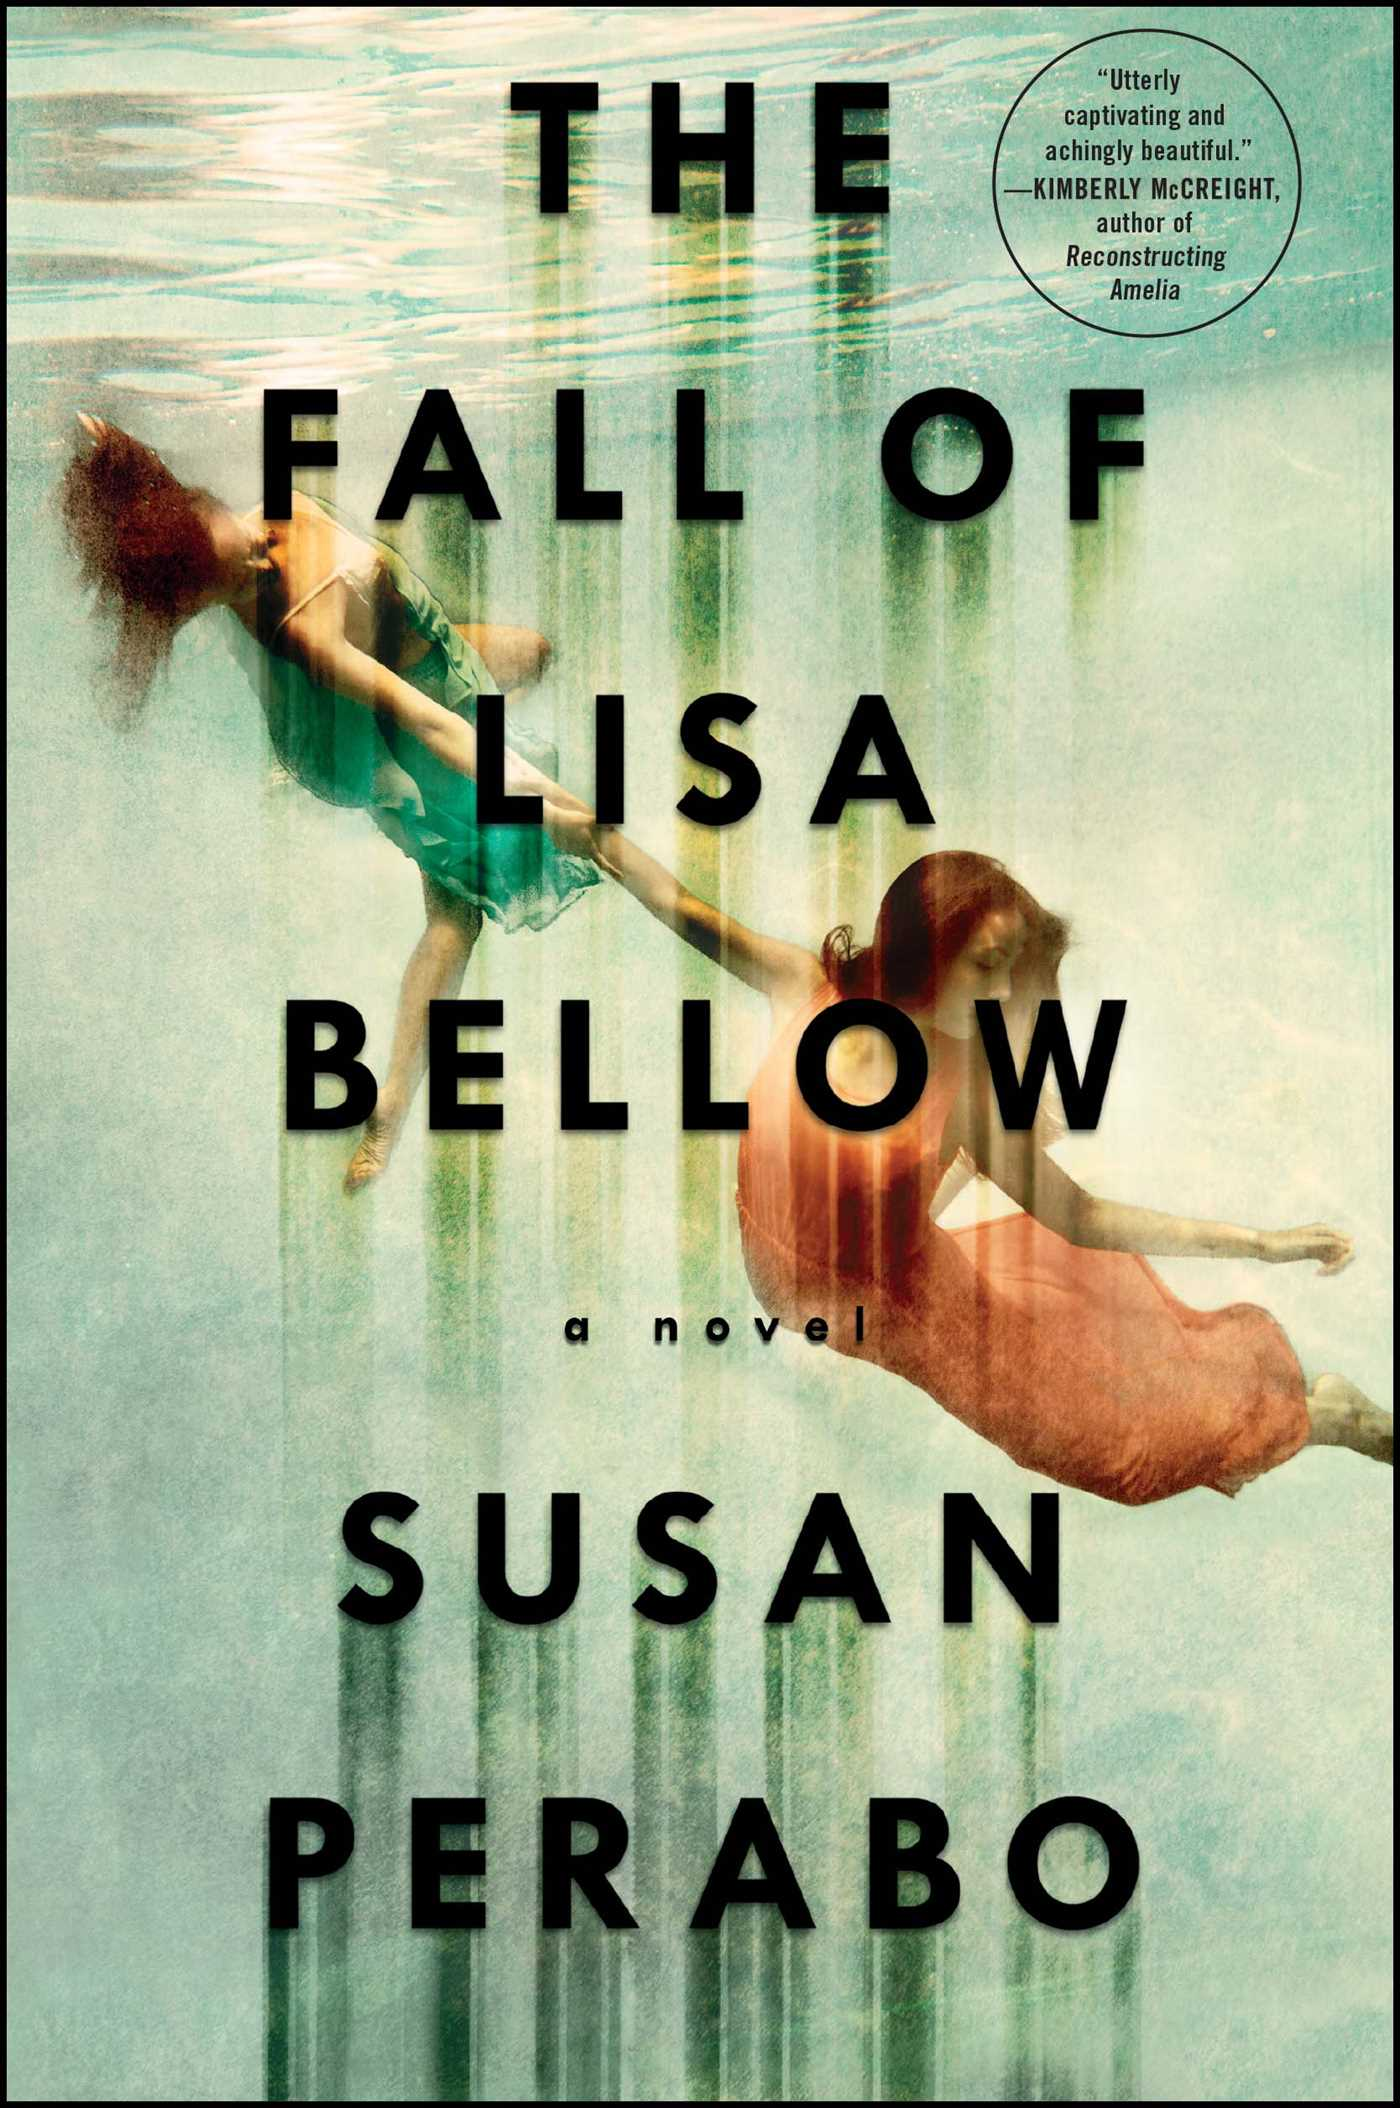 Book Cover Image (jpg): The Fall of Lisa Bellow